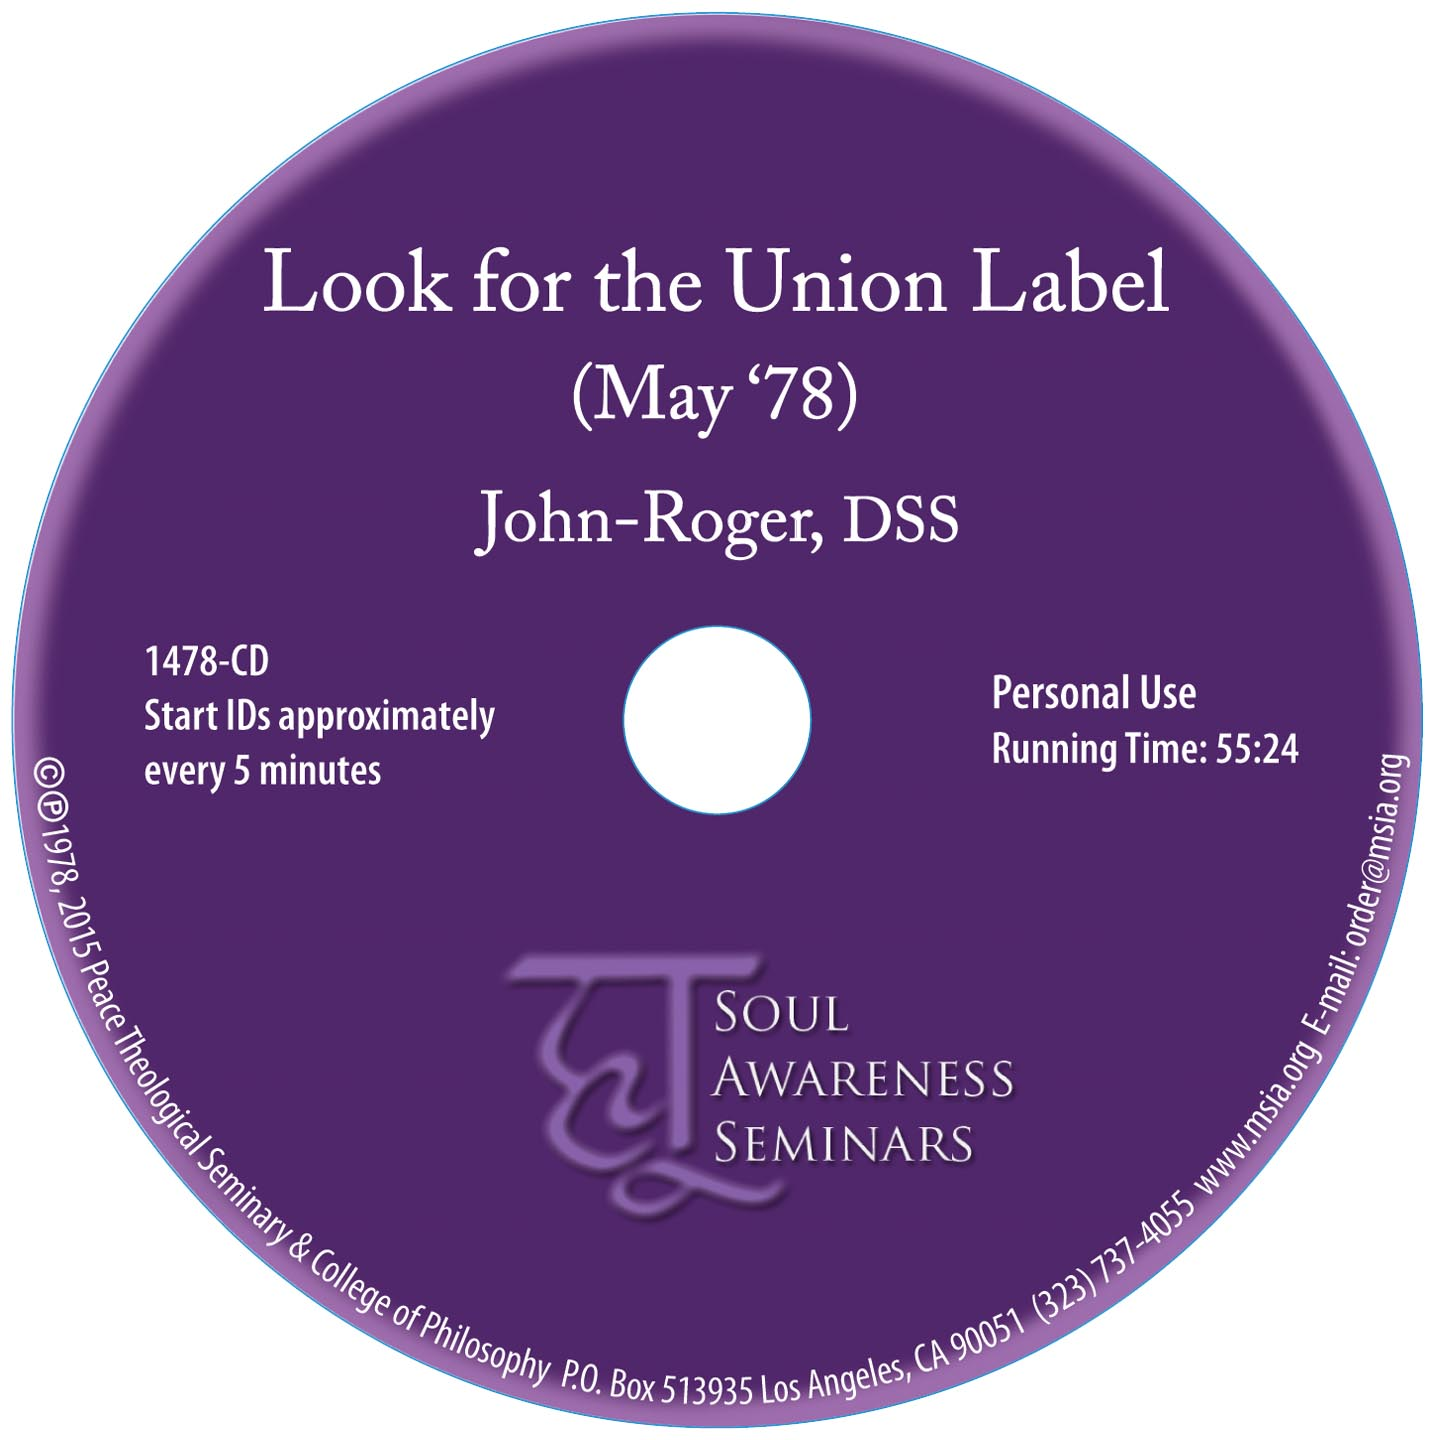 Look for the Union Label CD